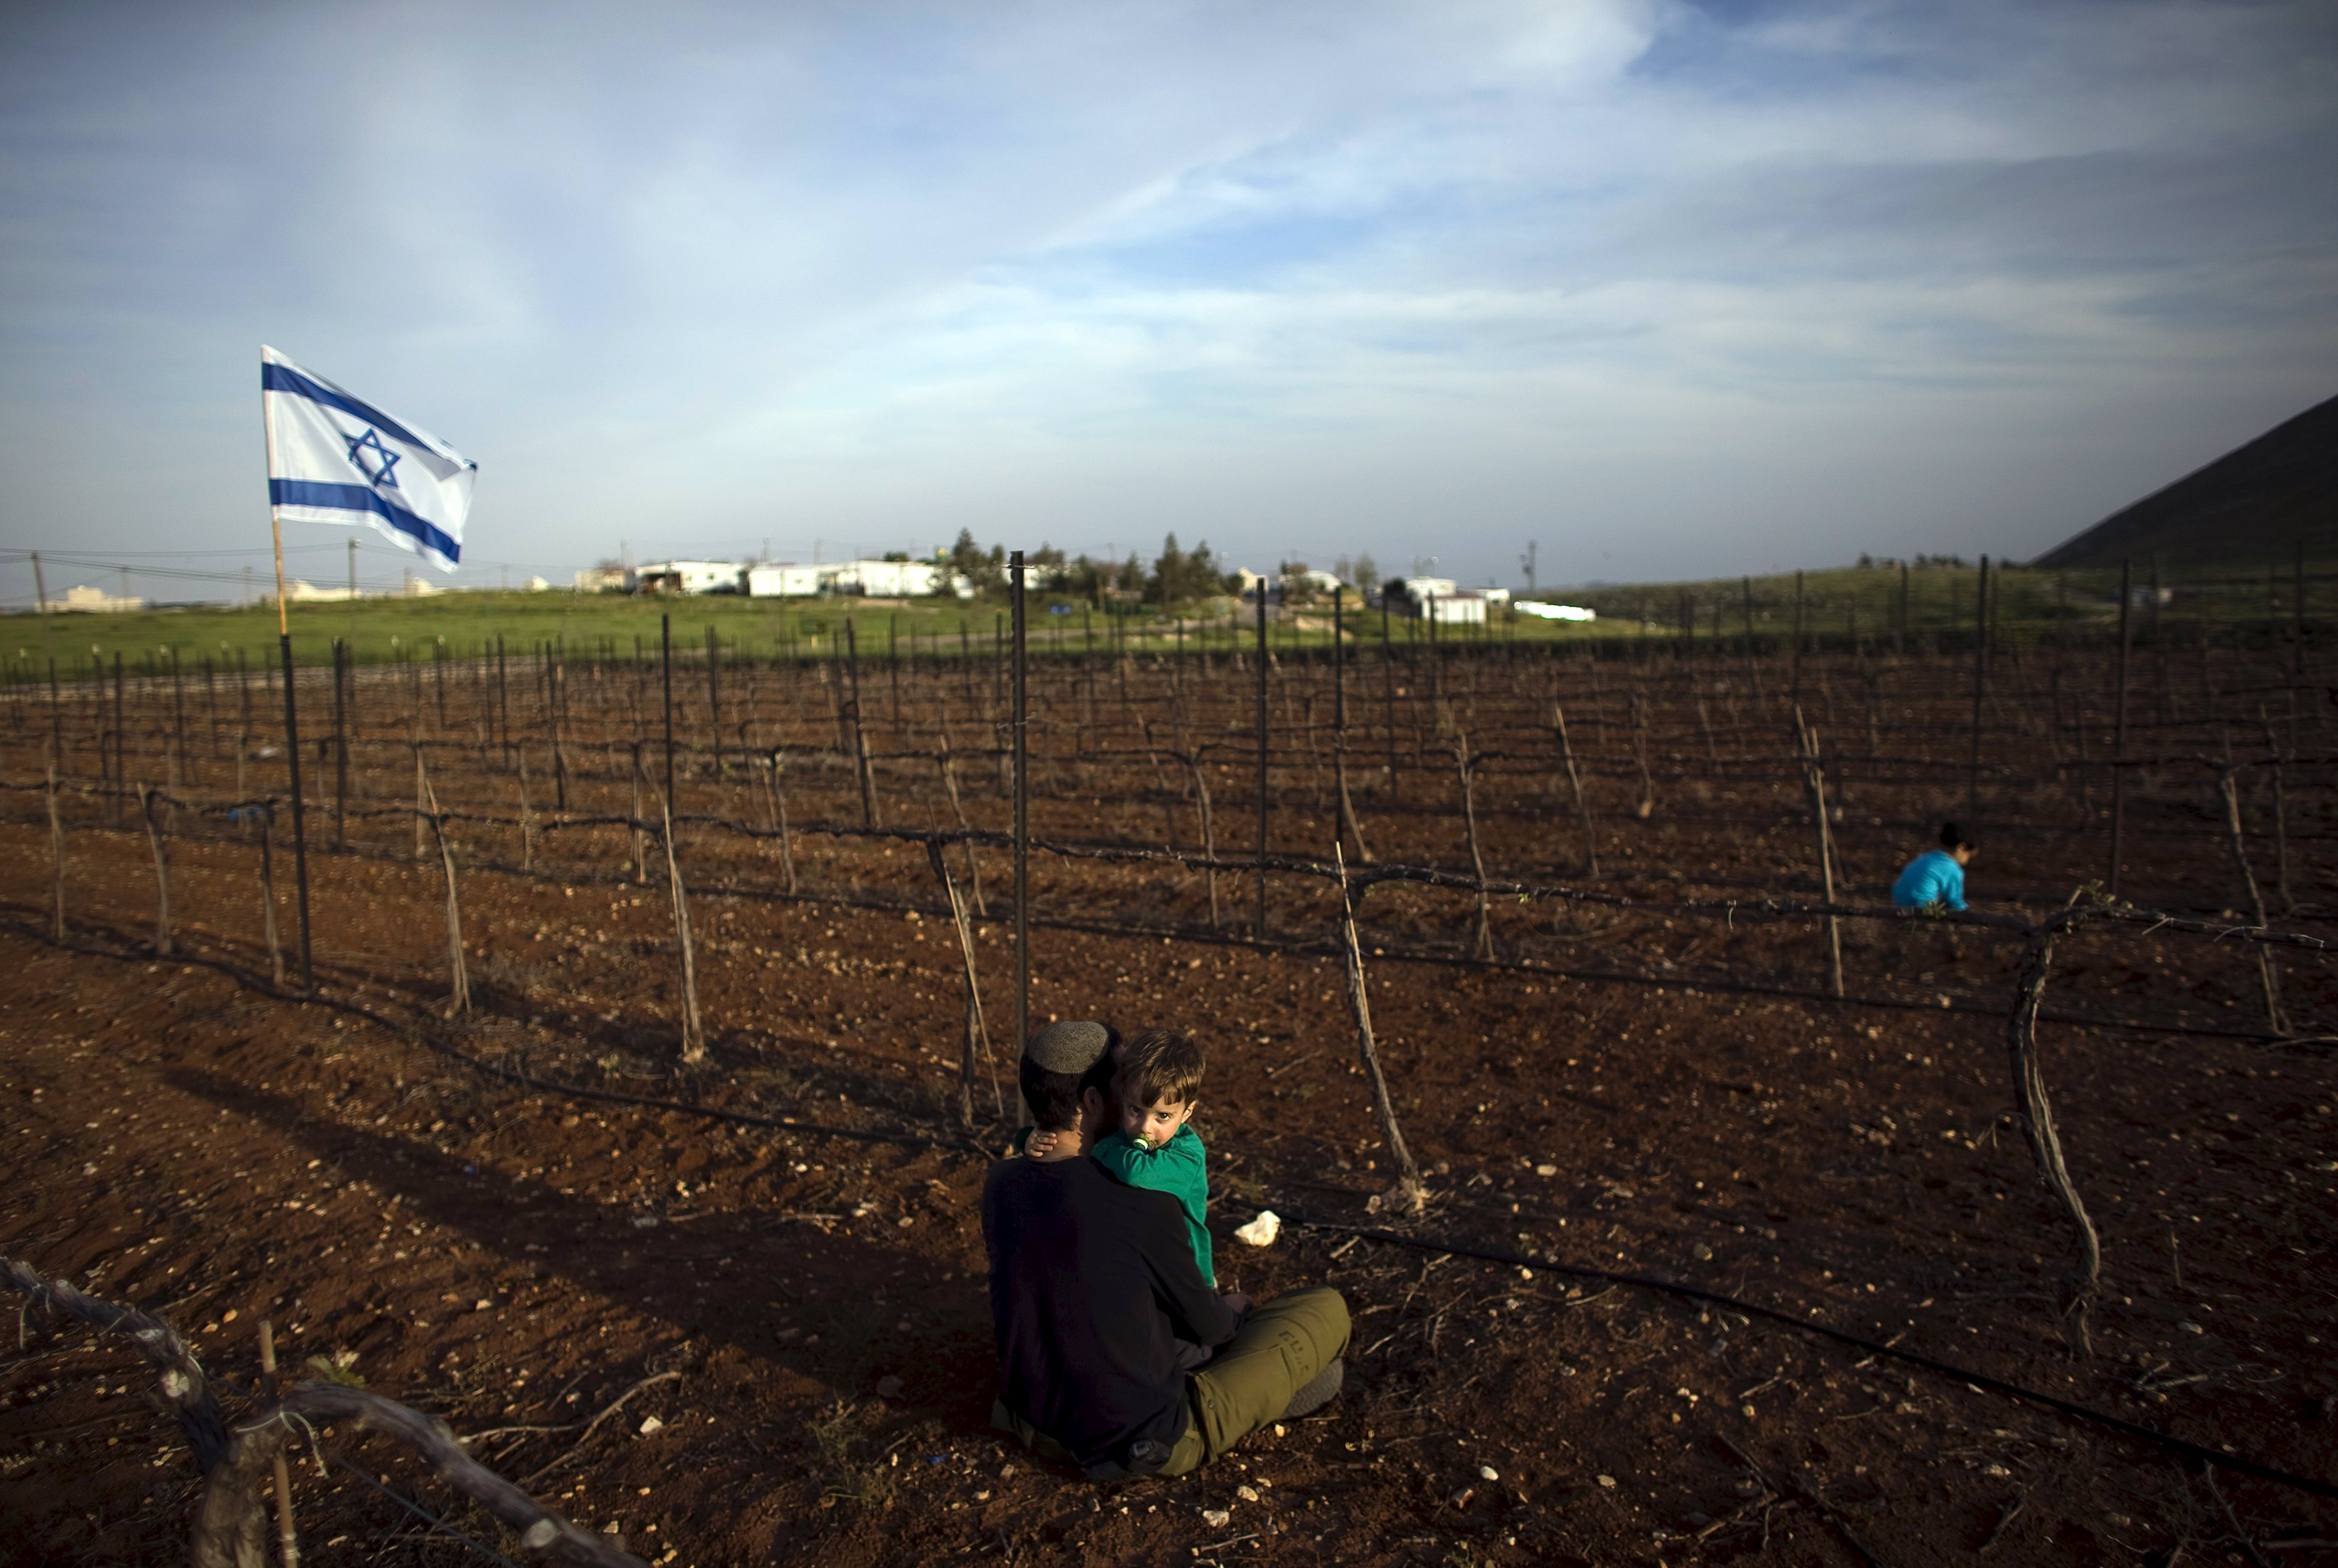 Kramim Israel  City new picture : Israel In Netanyahu's Fourth Term, What's Next For Israeli ...